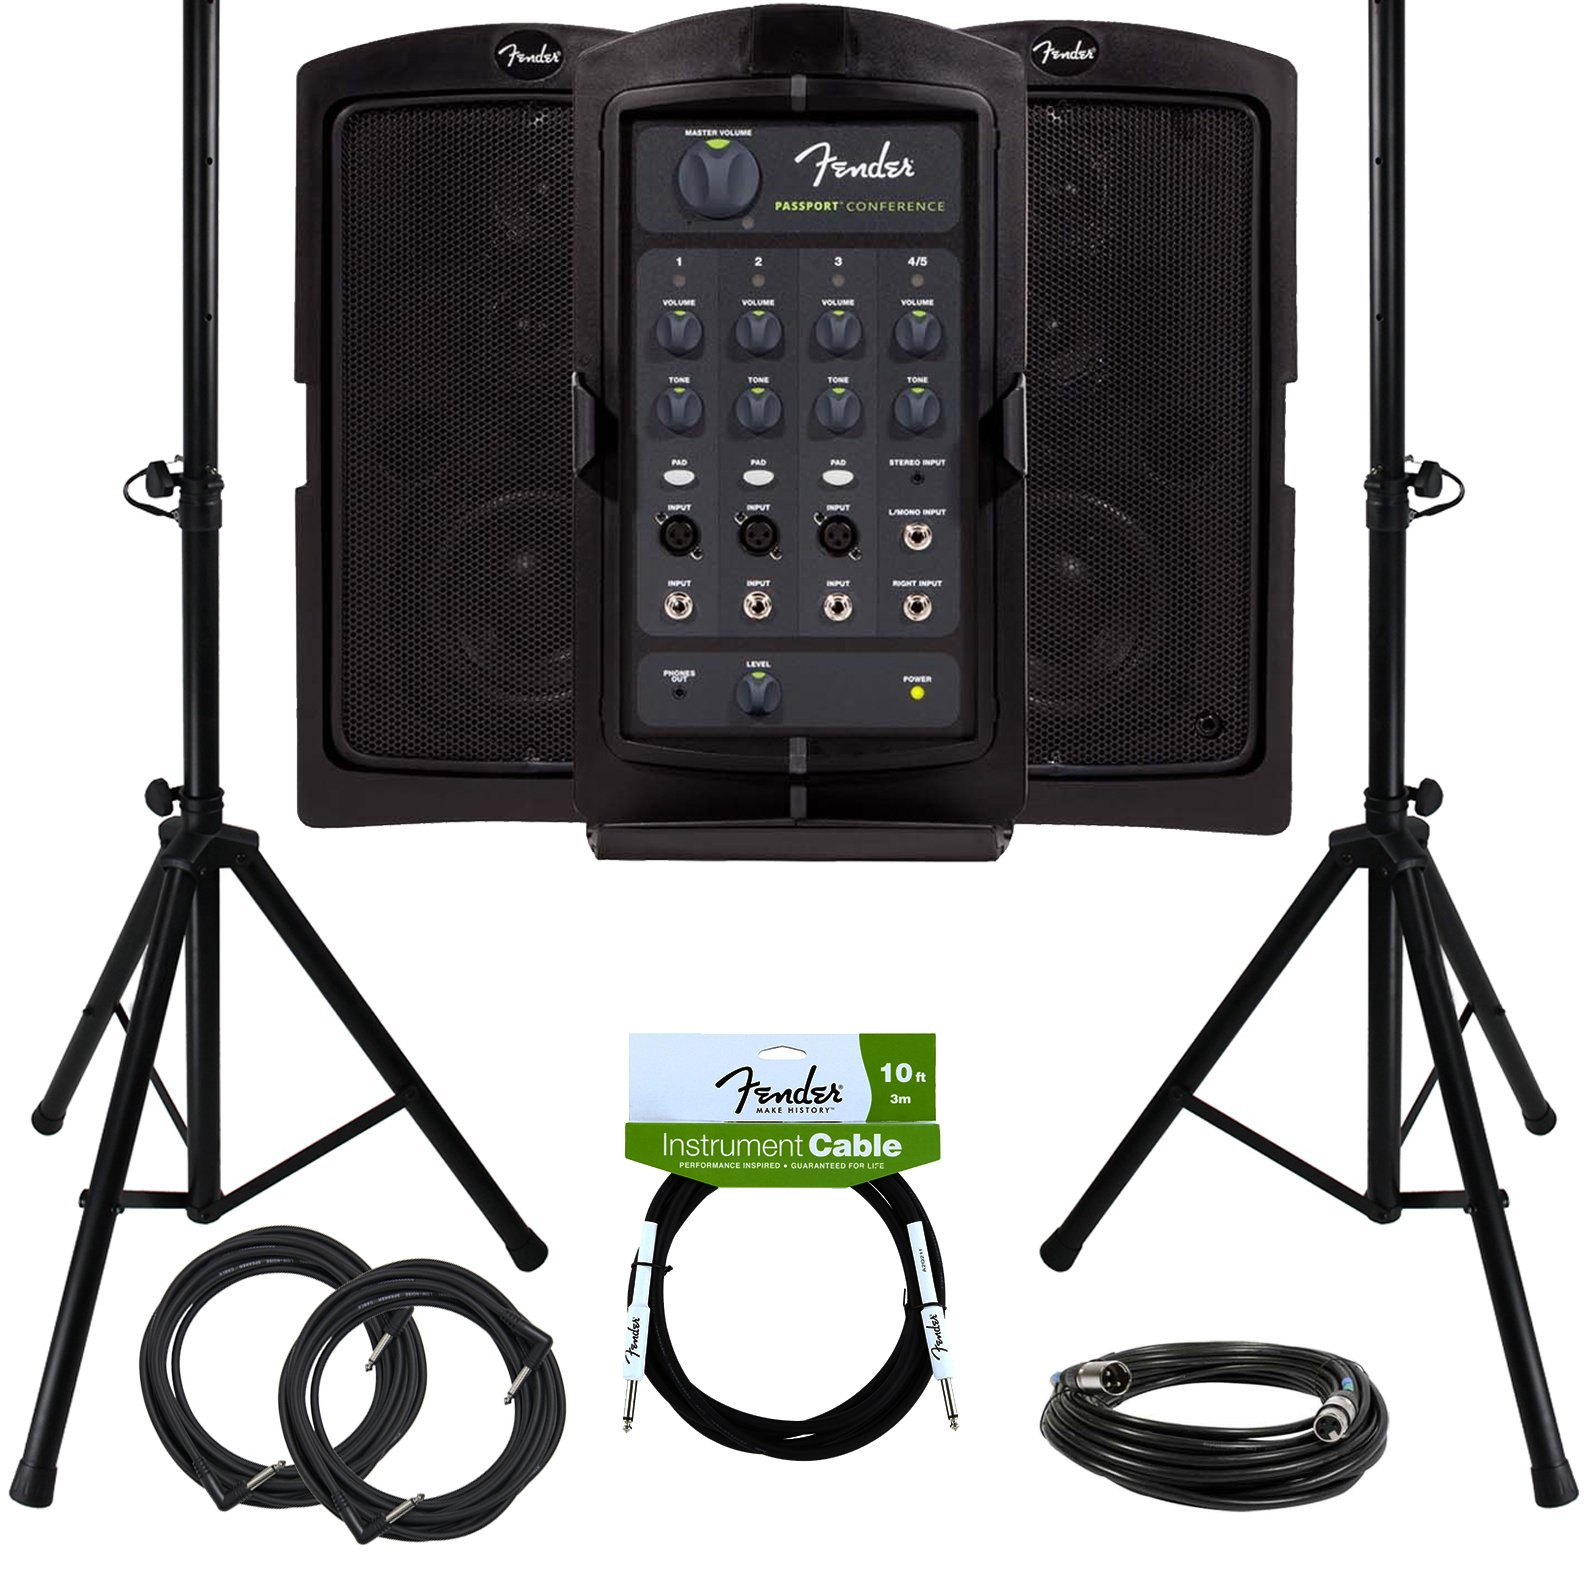 Fender Passport Conference Portable PA System Bundle with Speaker Stands, XLR Cable, Instrument Cable, and Austin Bazaar Polishing Cloth